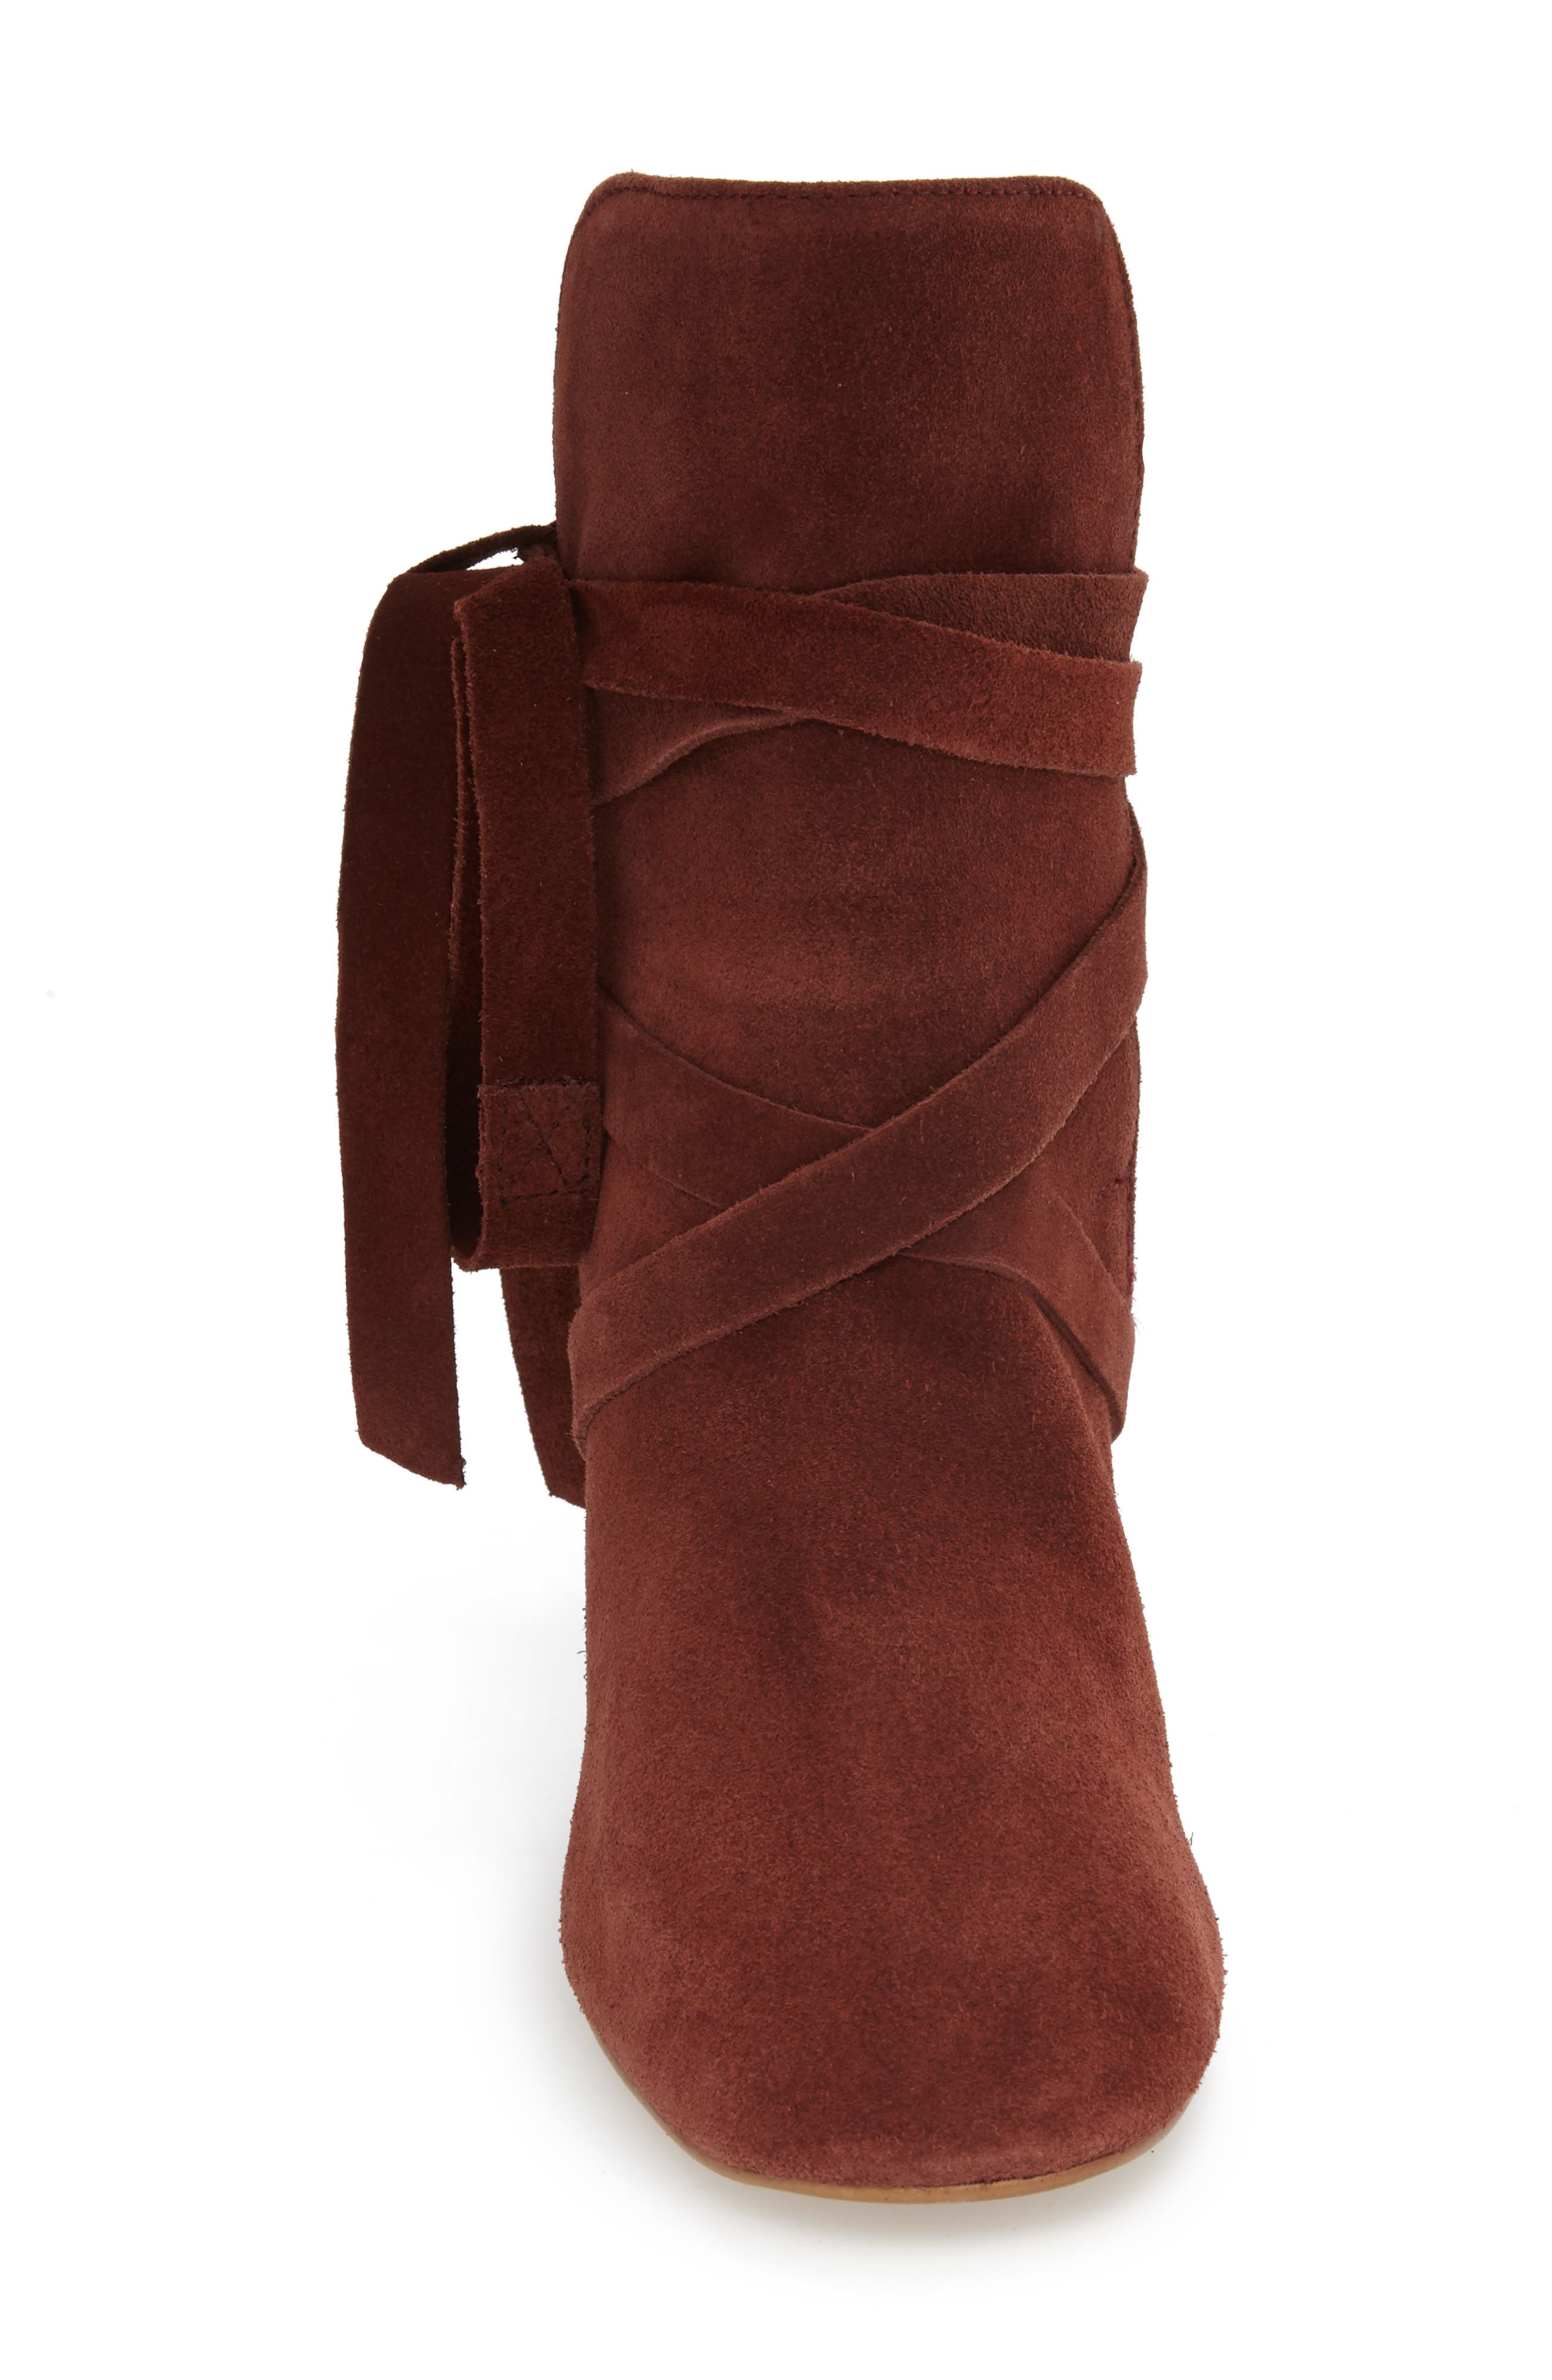 'Anabel' Lace-Up Boots,                             Alternate thumbnail 5, color,                             220